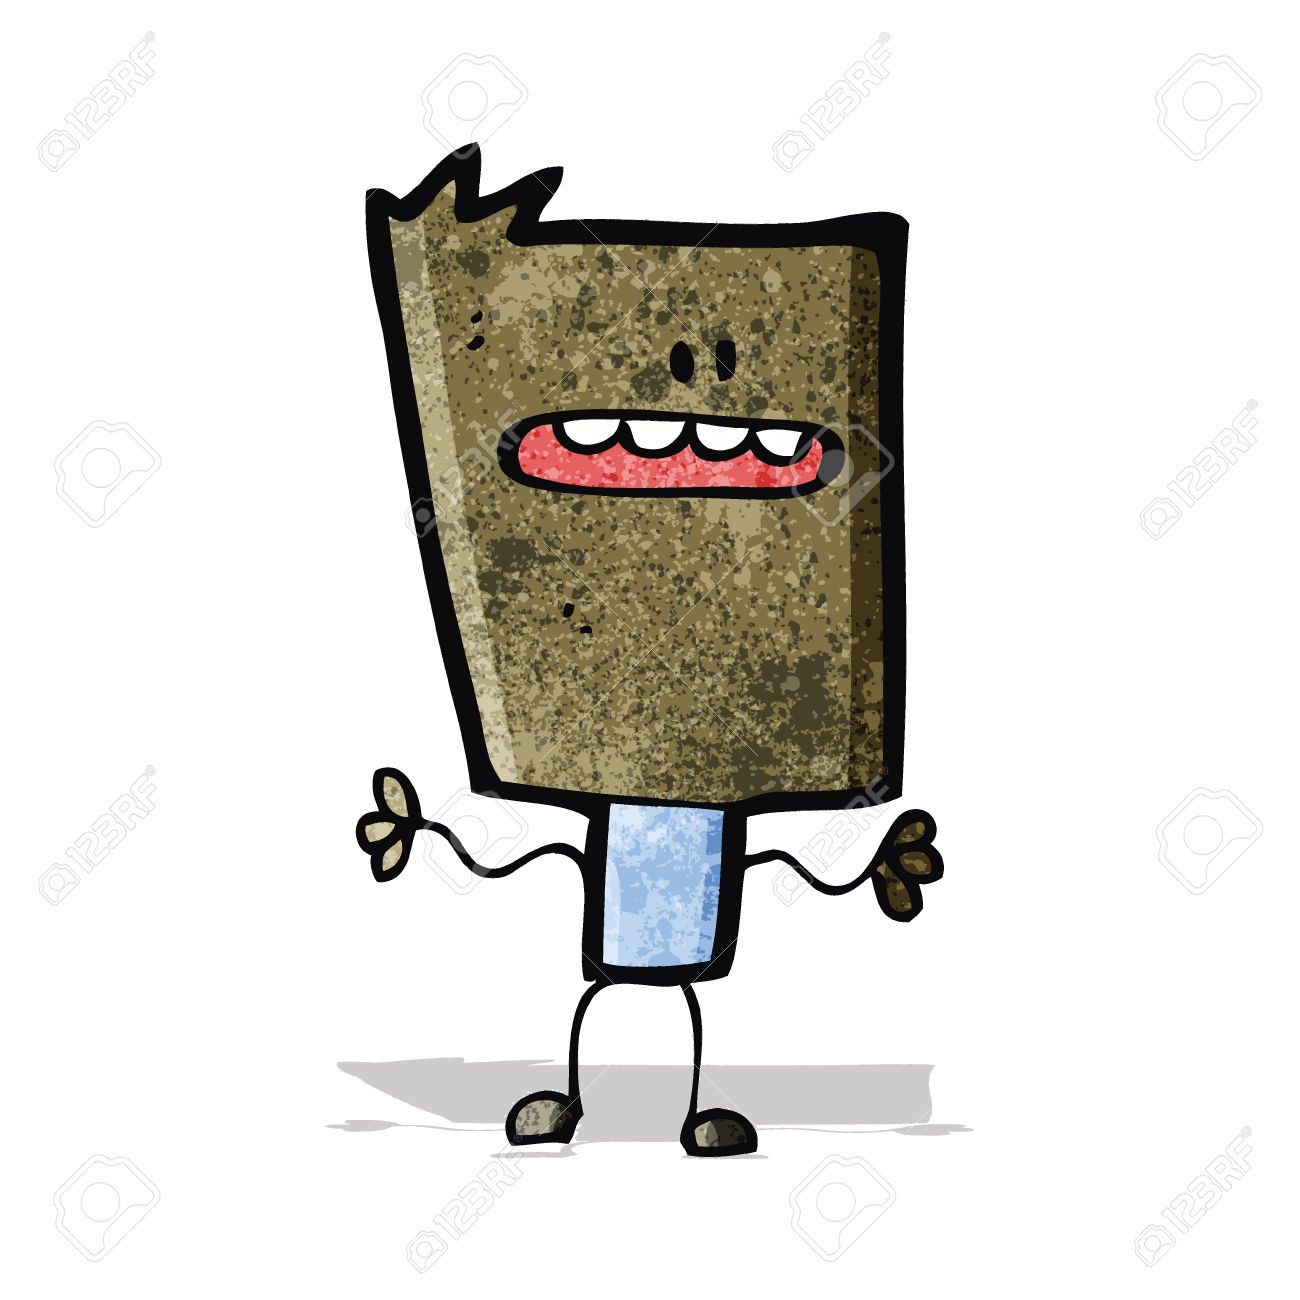 Cartoon Block Head Royalty Free Cliparts, Vectors, And Stock.